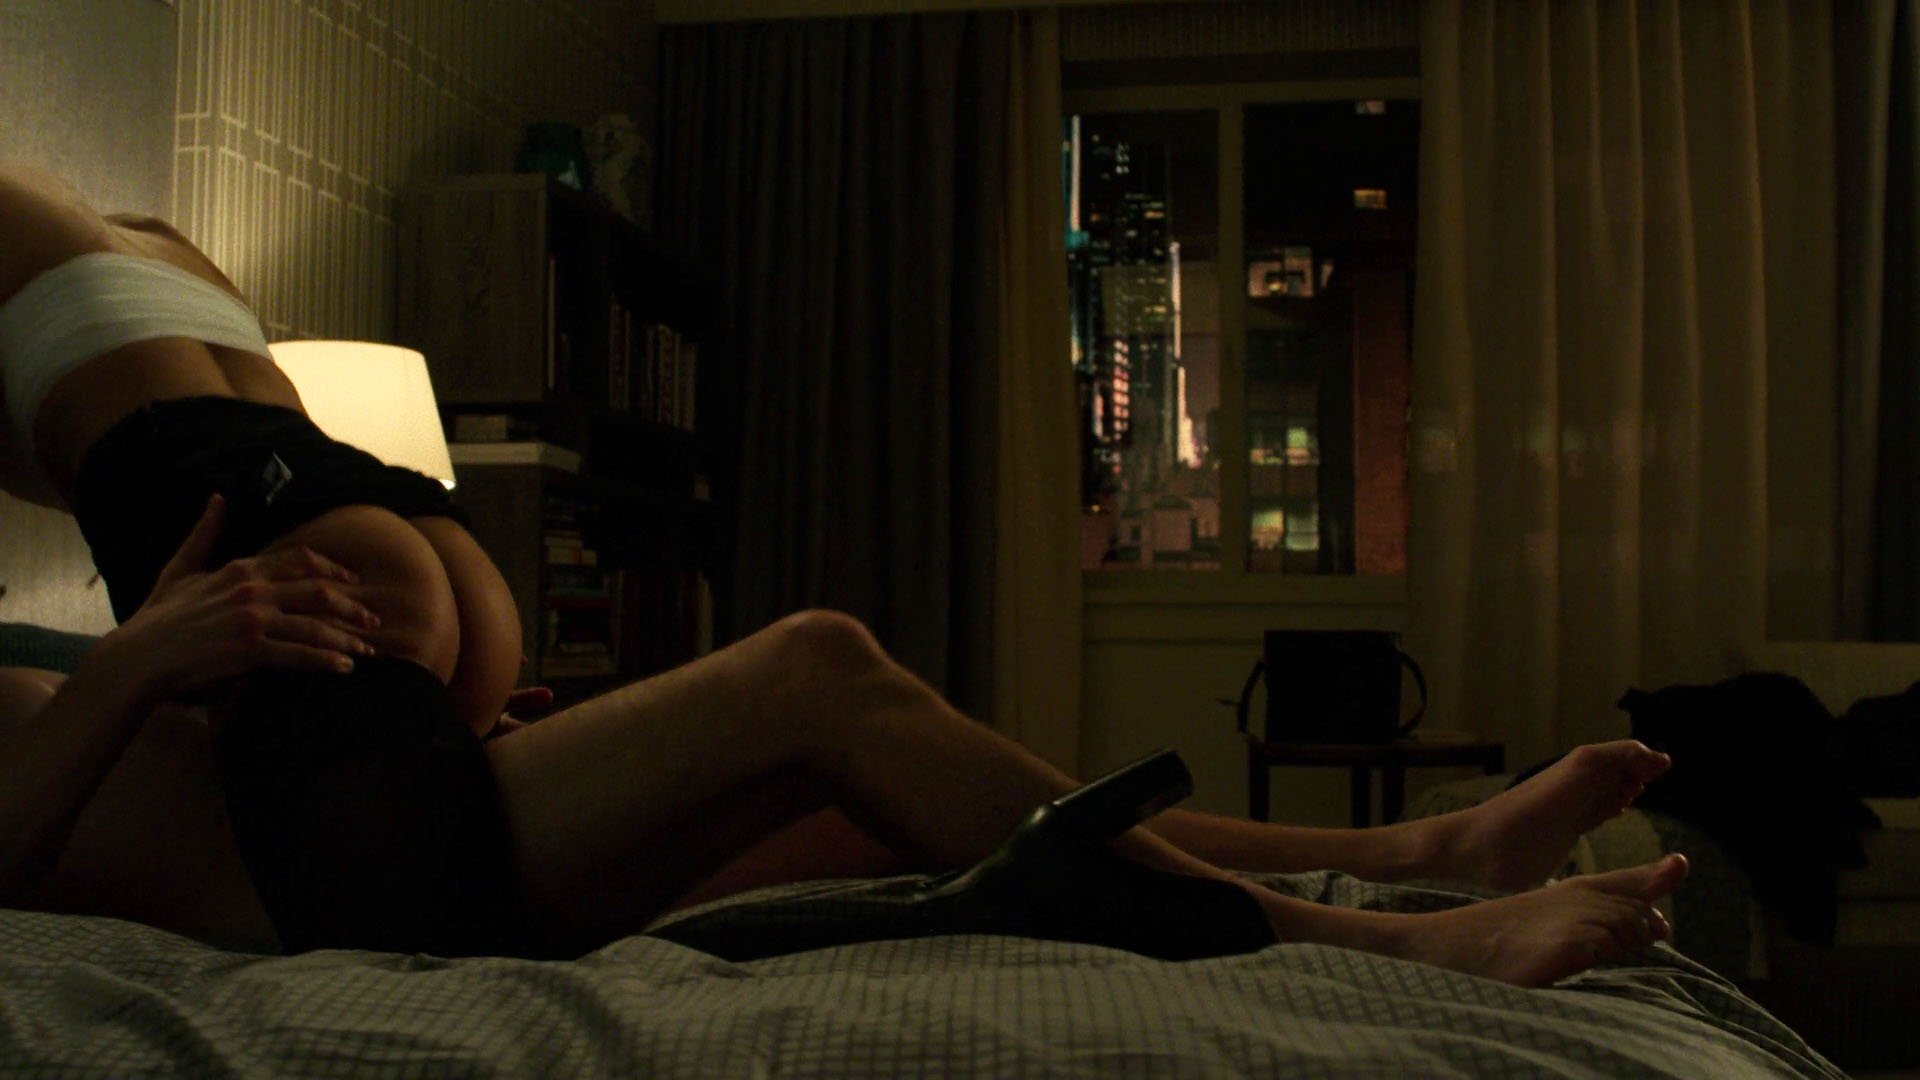 Amber Rose Revah nude - The Punisher s01e05 (2017)